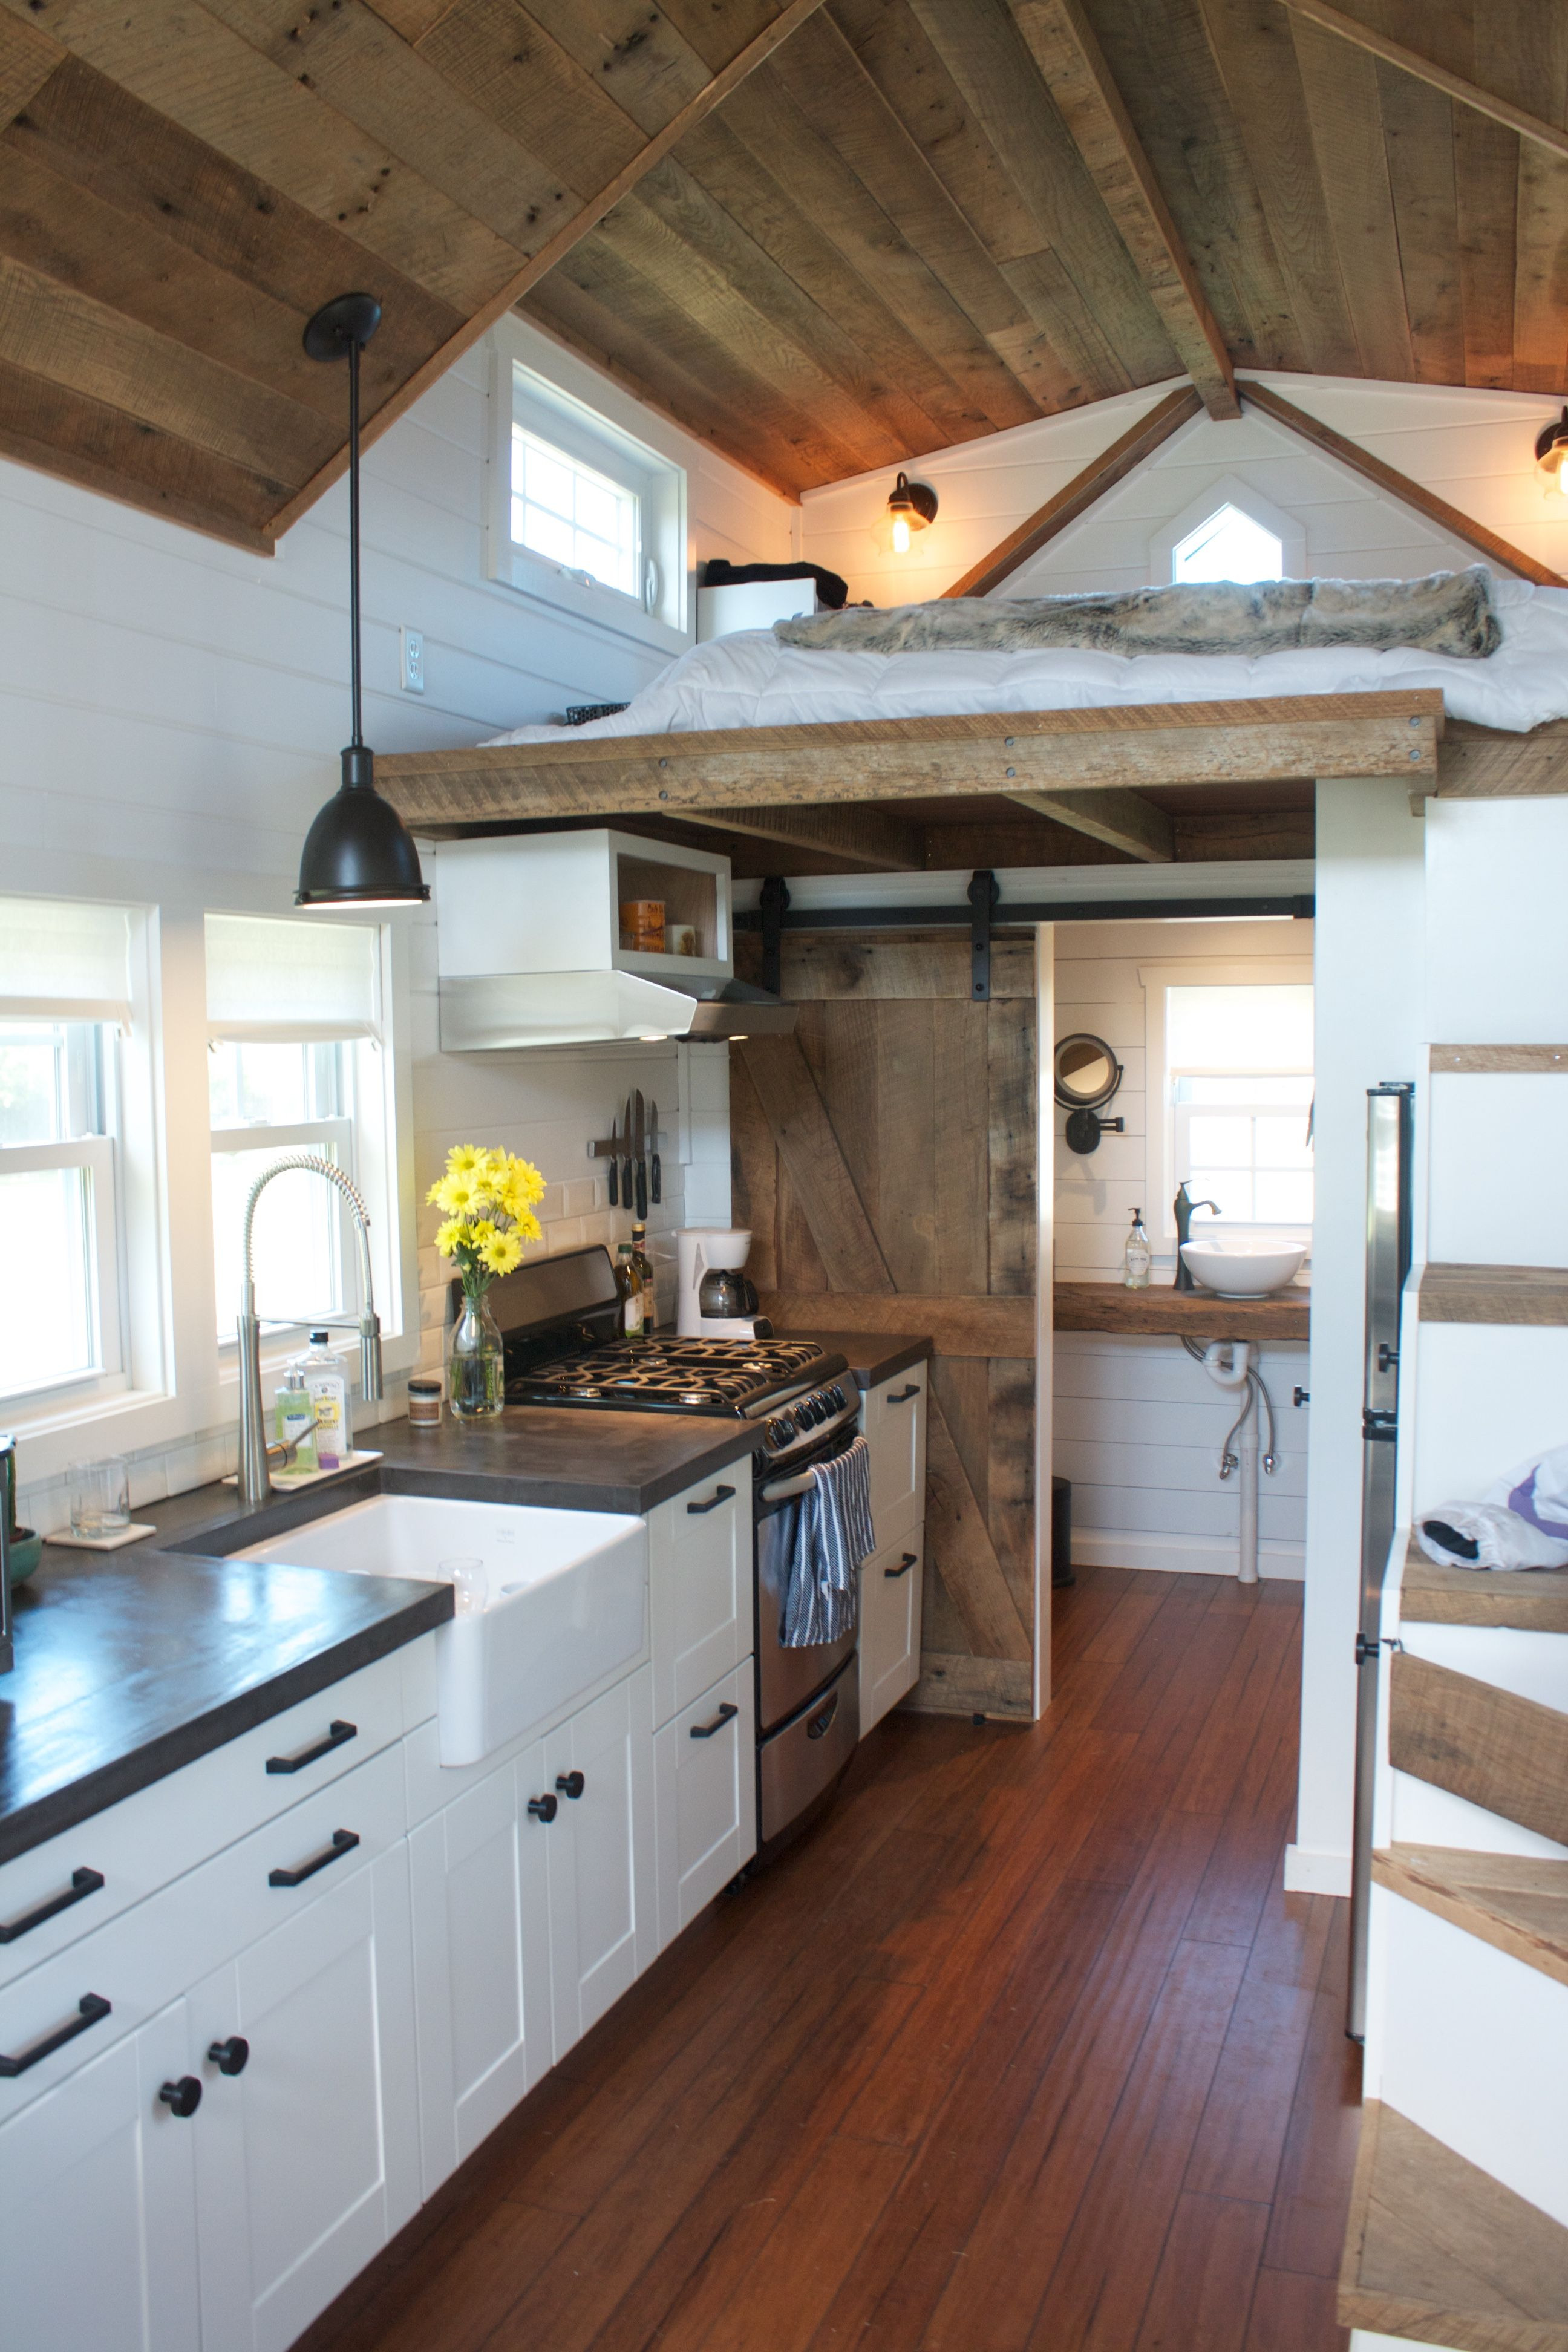 Floor Plans for Tiny Houses On Wheels Lovely Super Easy to Build Tiny House Plans